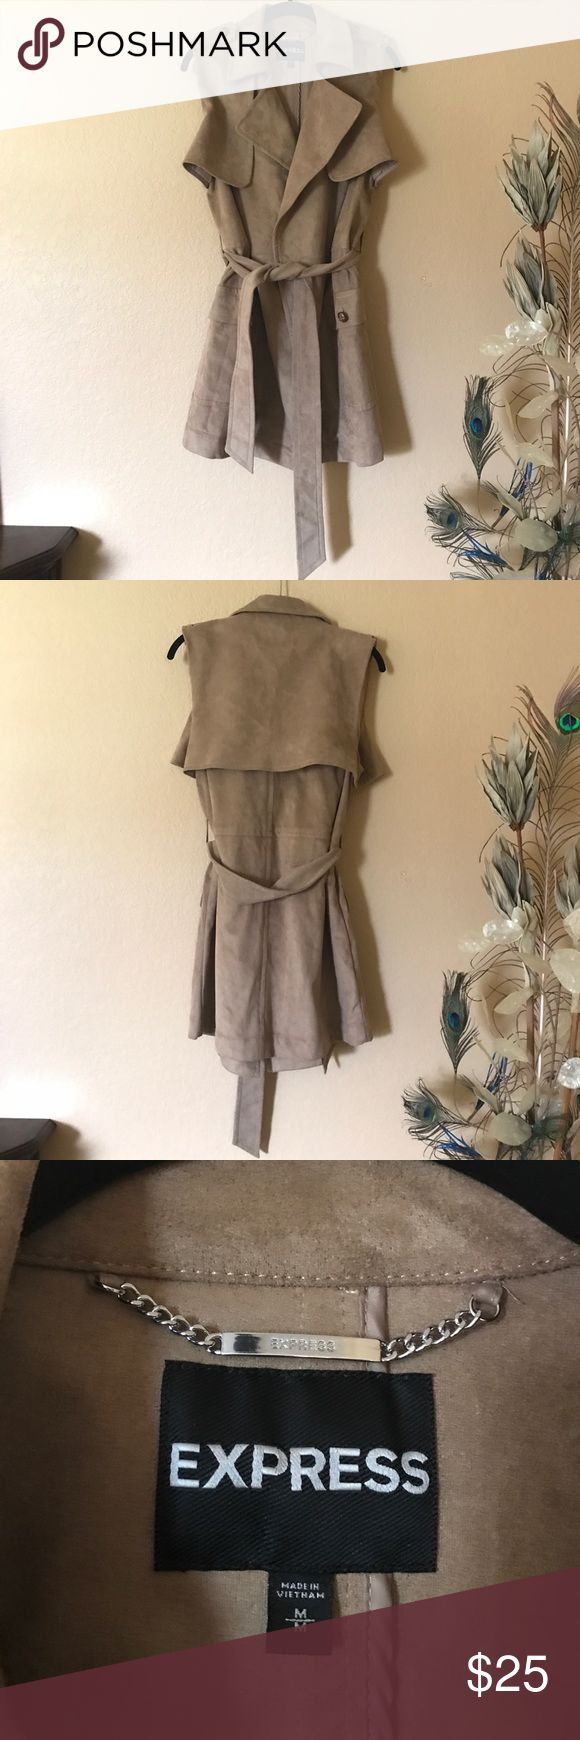 "EXPRESS vest Just in time for Fall! Faux tan suede belted vest will go great with a pair of skinny jeans and tall leather boots! Measures approx 30"" in length, and offers two big front pockets. Never worn. Express Jackets & Coats Vests"